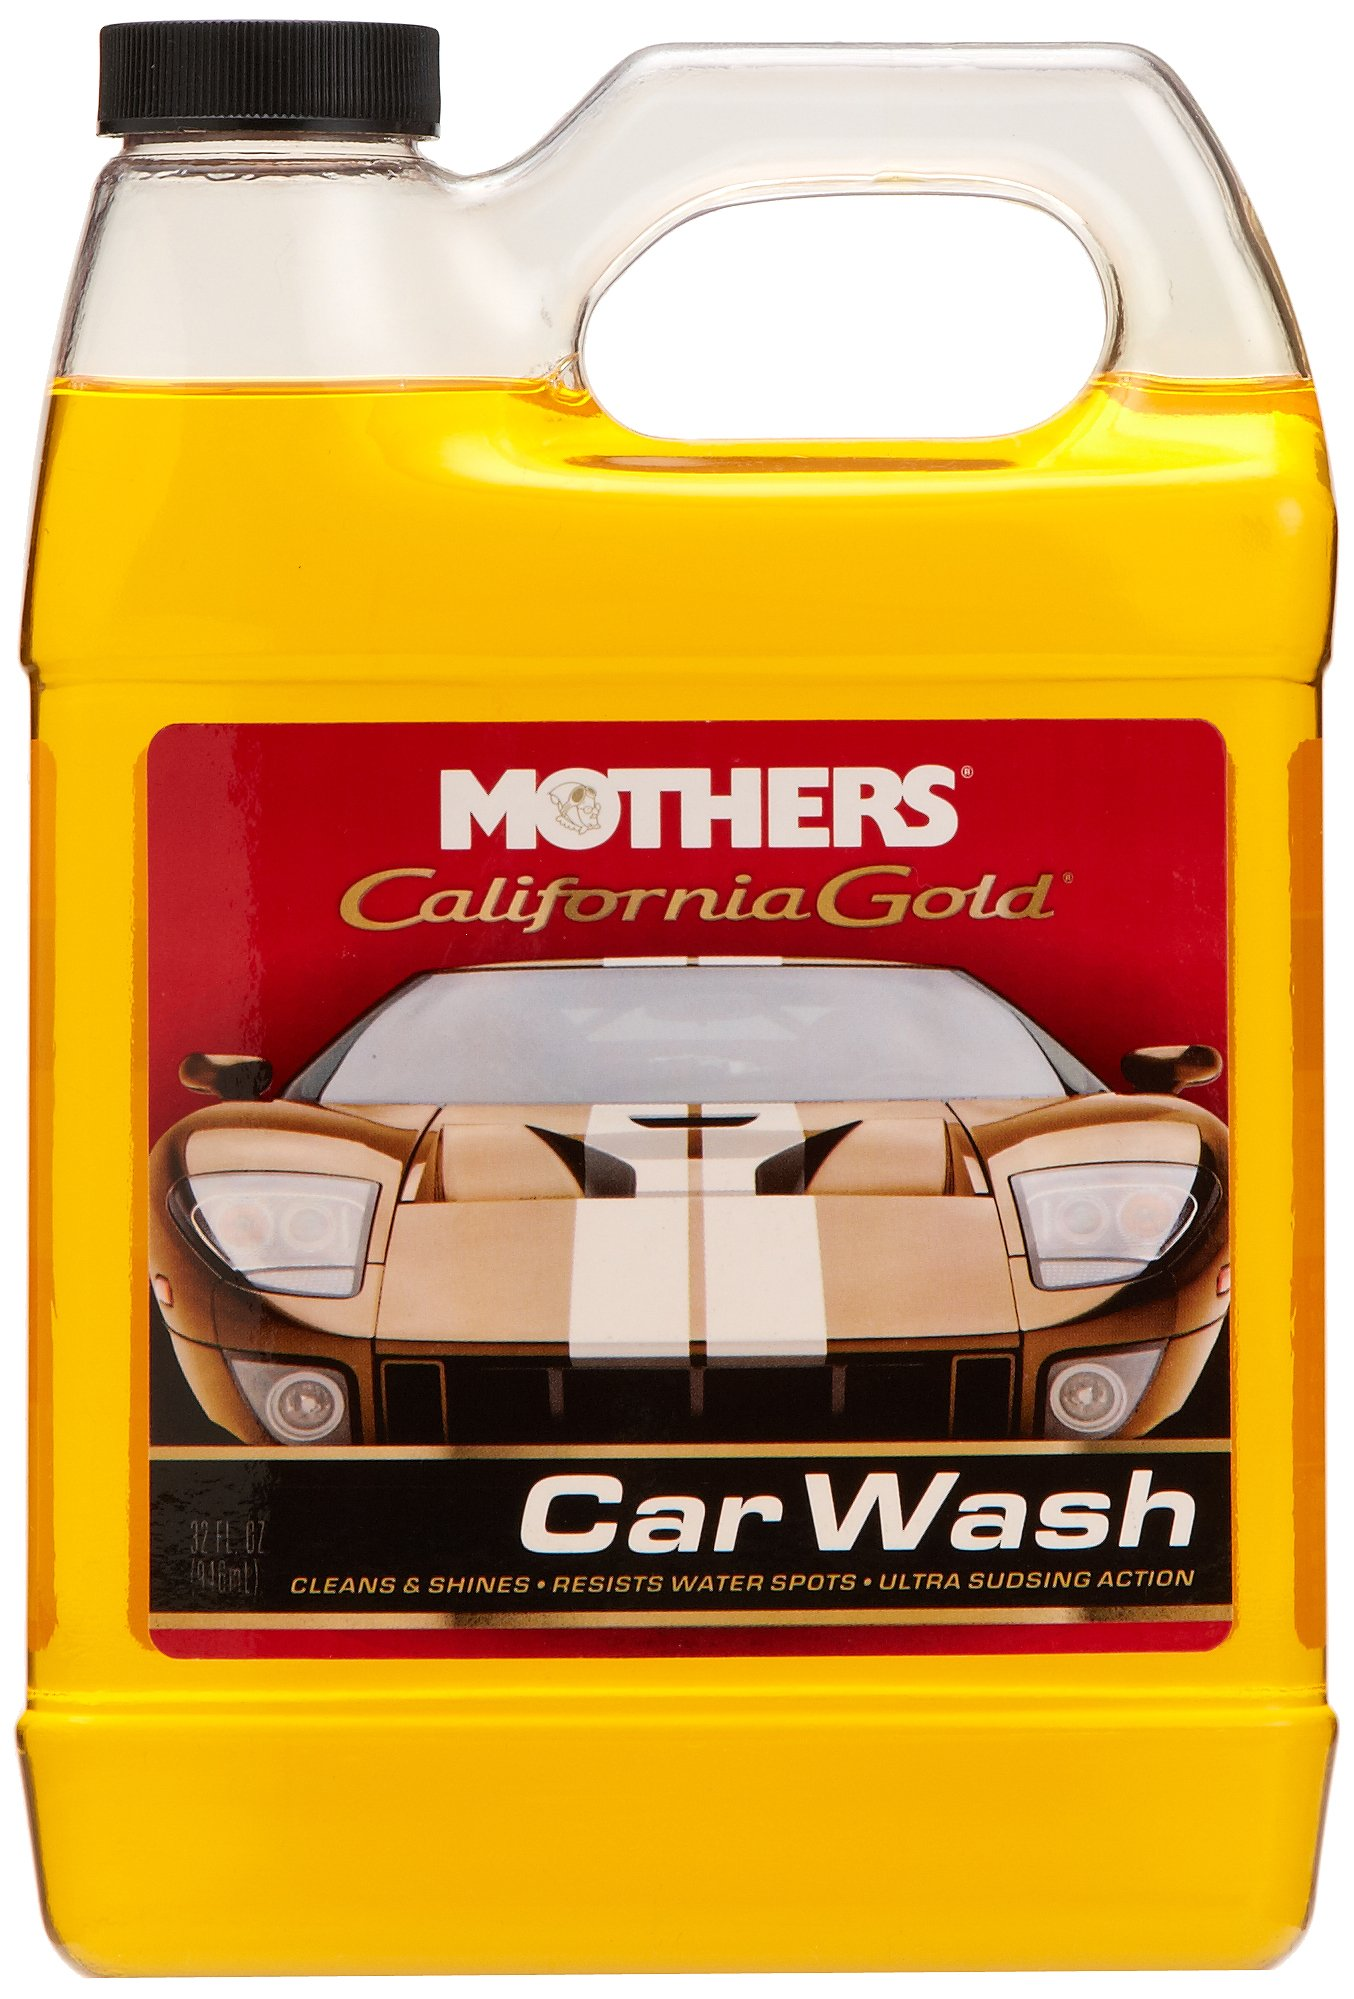 mothers-05632-california-gold-car-wash-32-oz-best-car-clean-wash-products-reviews